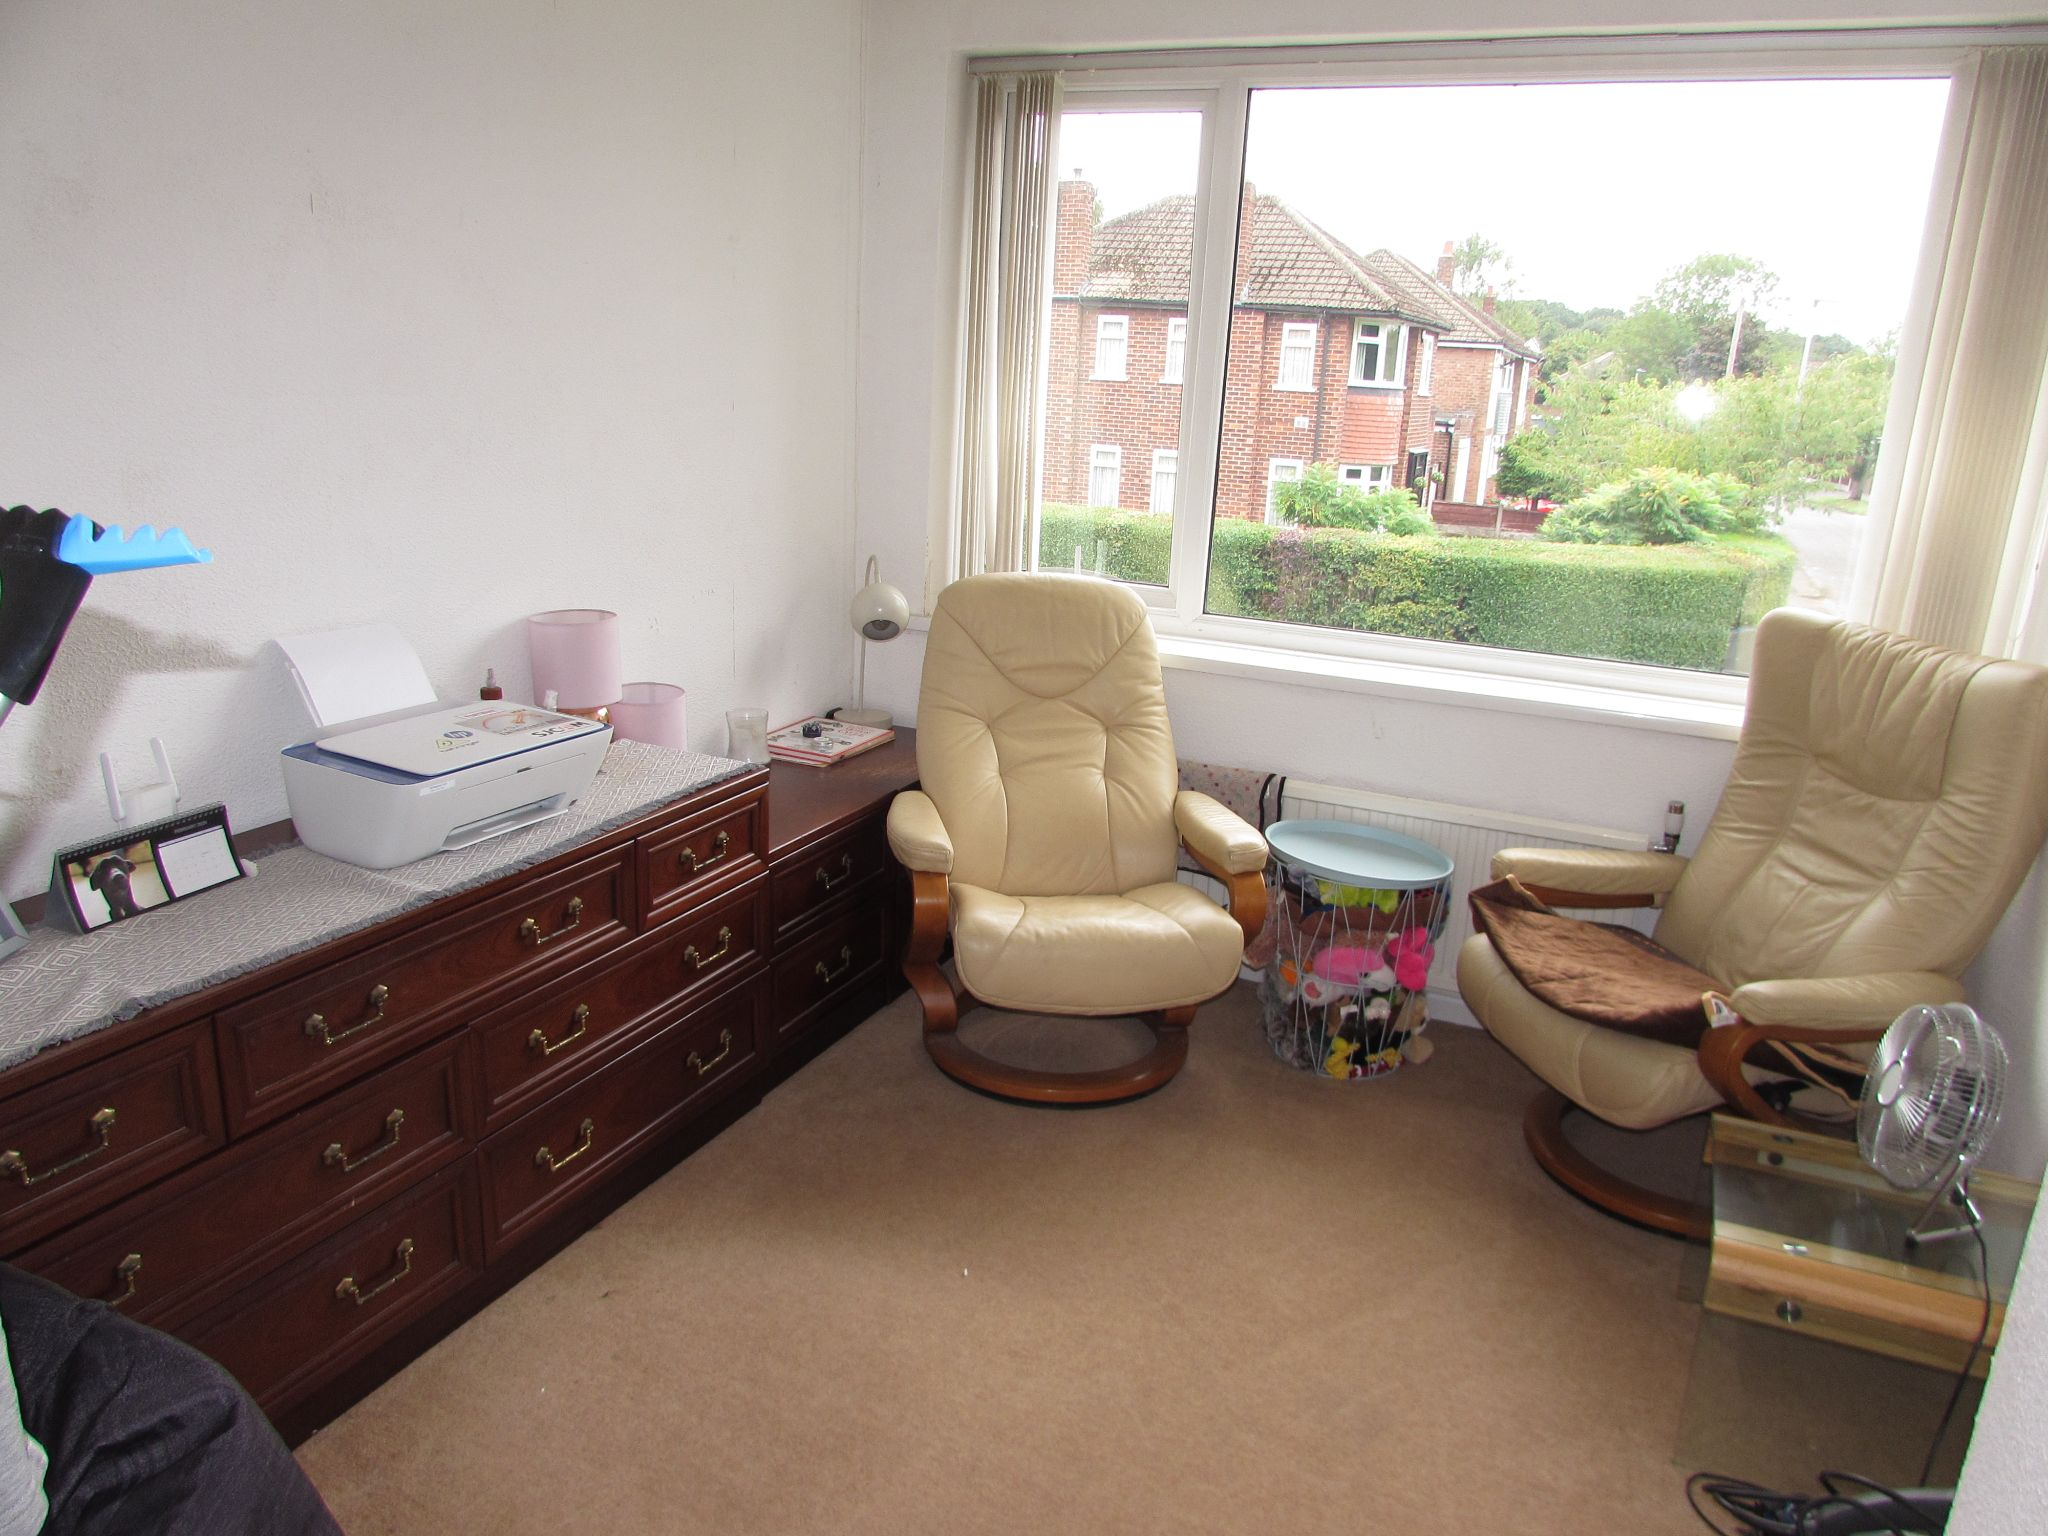 5 Bedroom Semi-detached House For Sale - Photograph 27